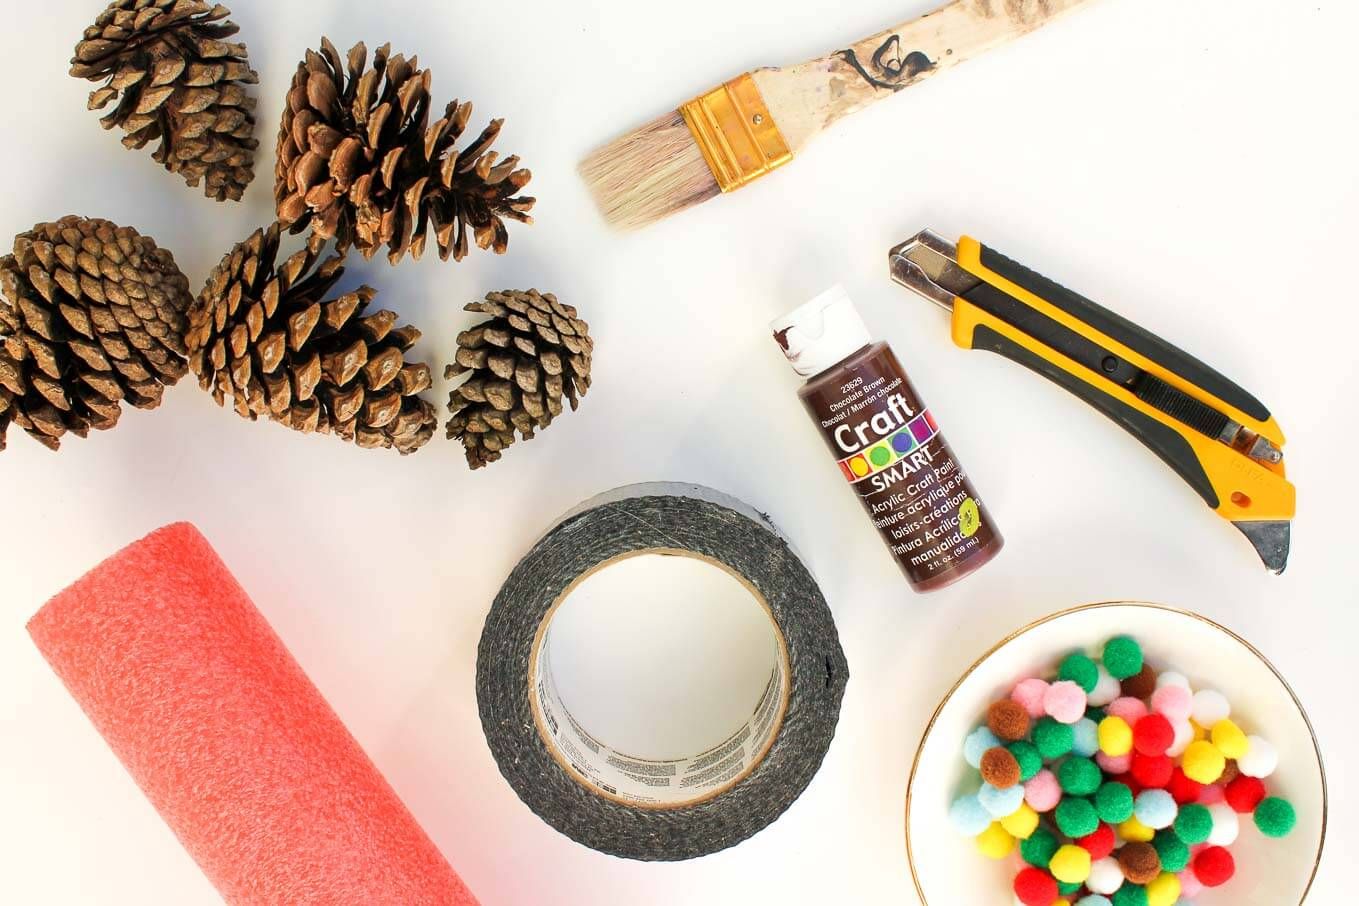 Diy Wreath Supplies Diy Pinecone Wreath Tutorial With Mini Pom Poms